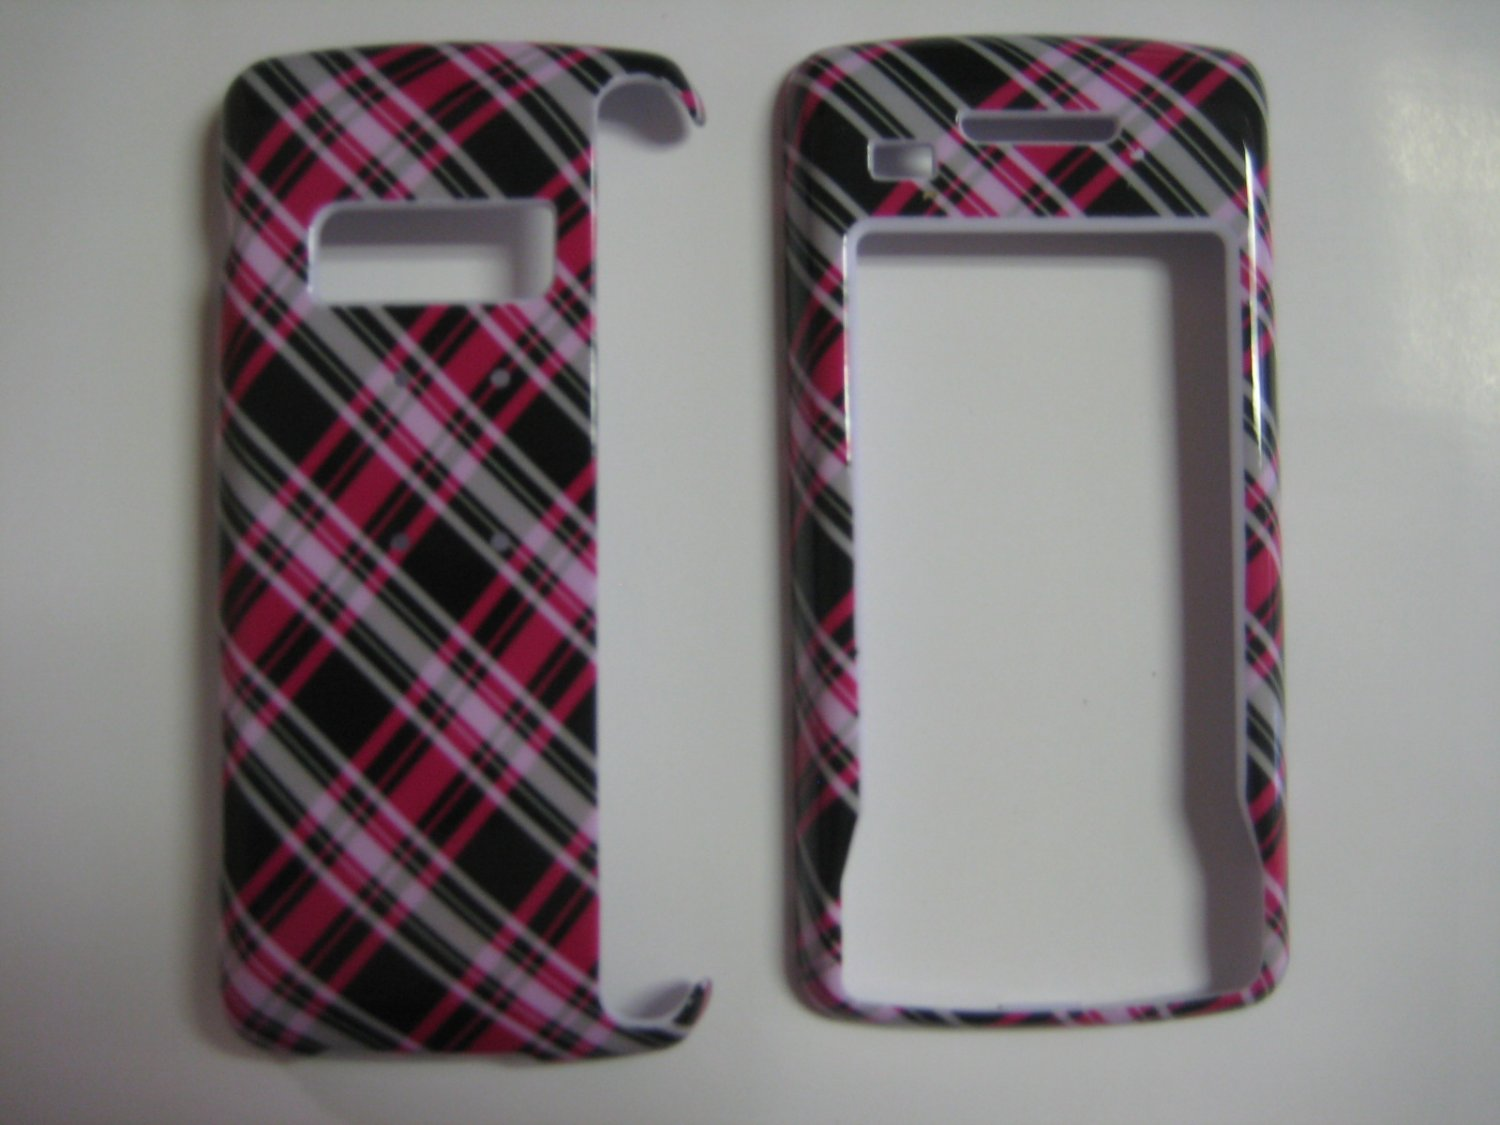 New Hot Pink Plaid Pattern Hard Protective Cover For LG Env Touch Lx11000 - (0015)